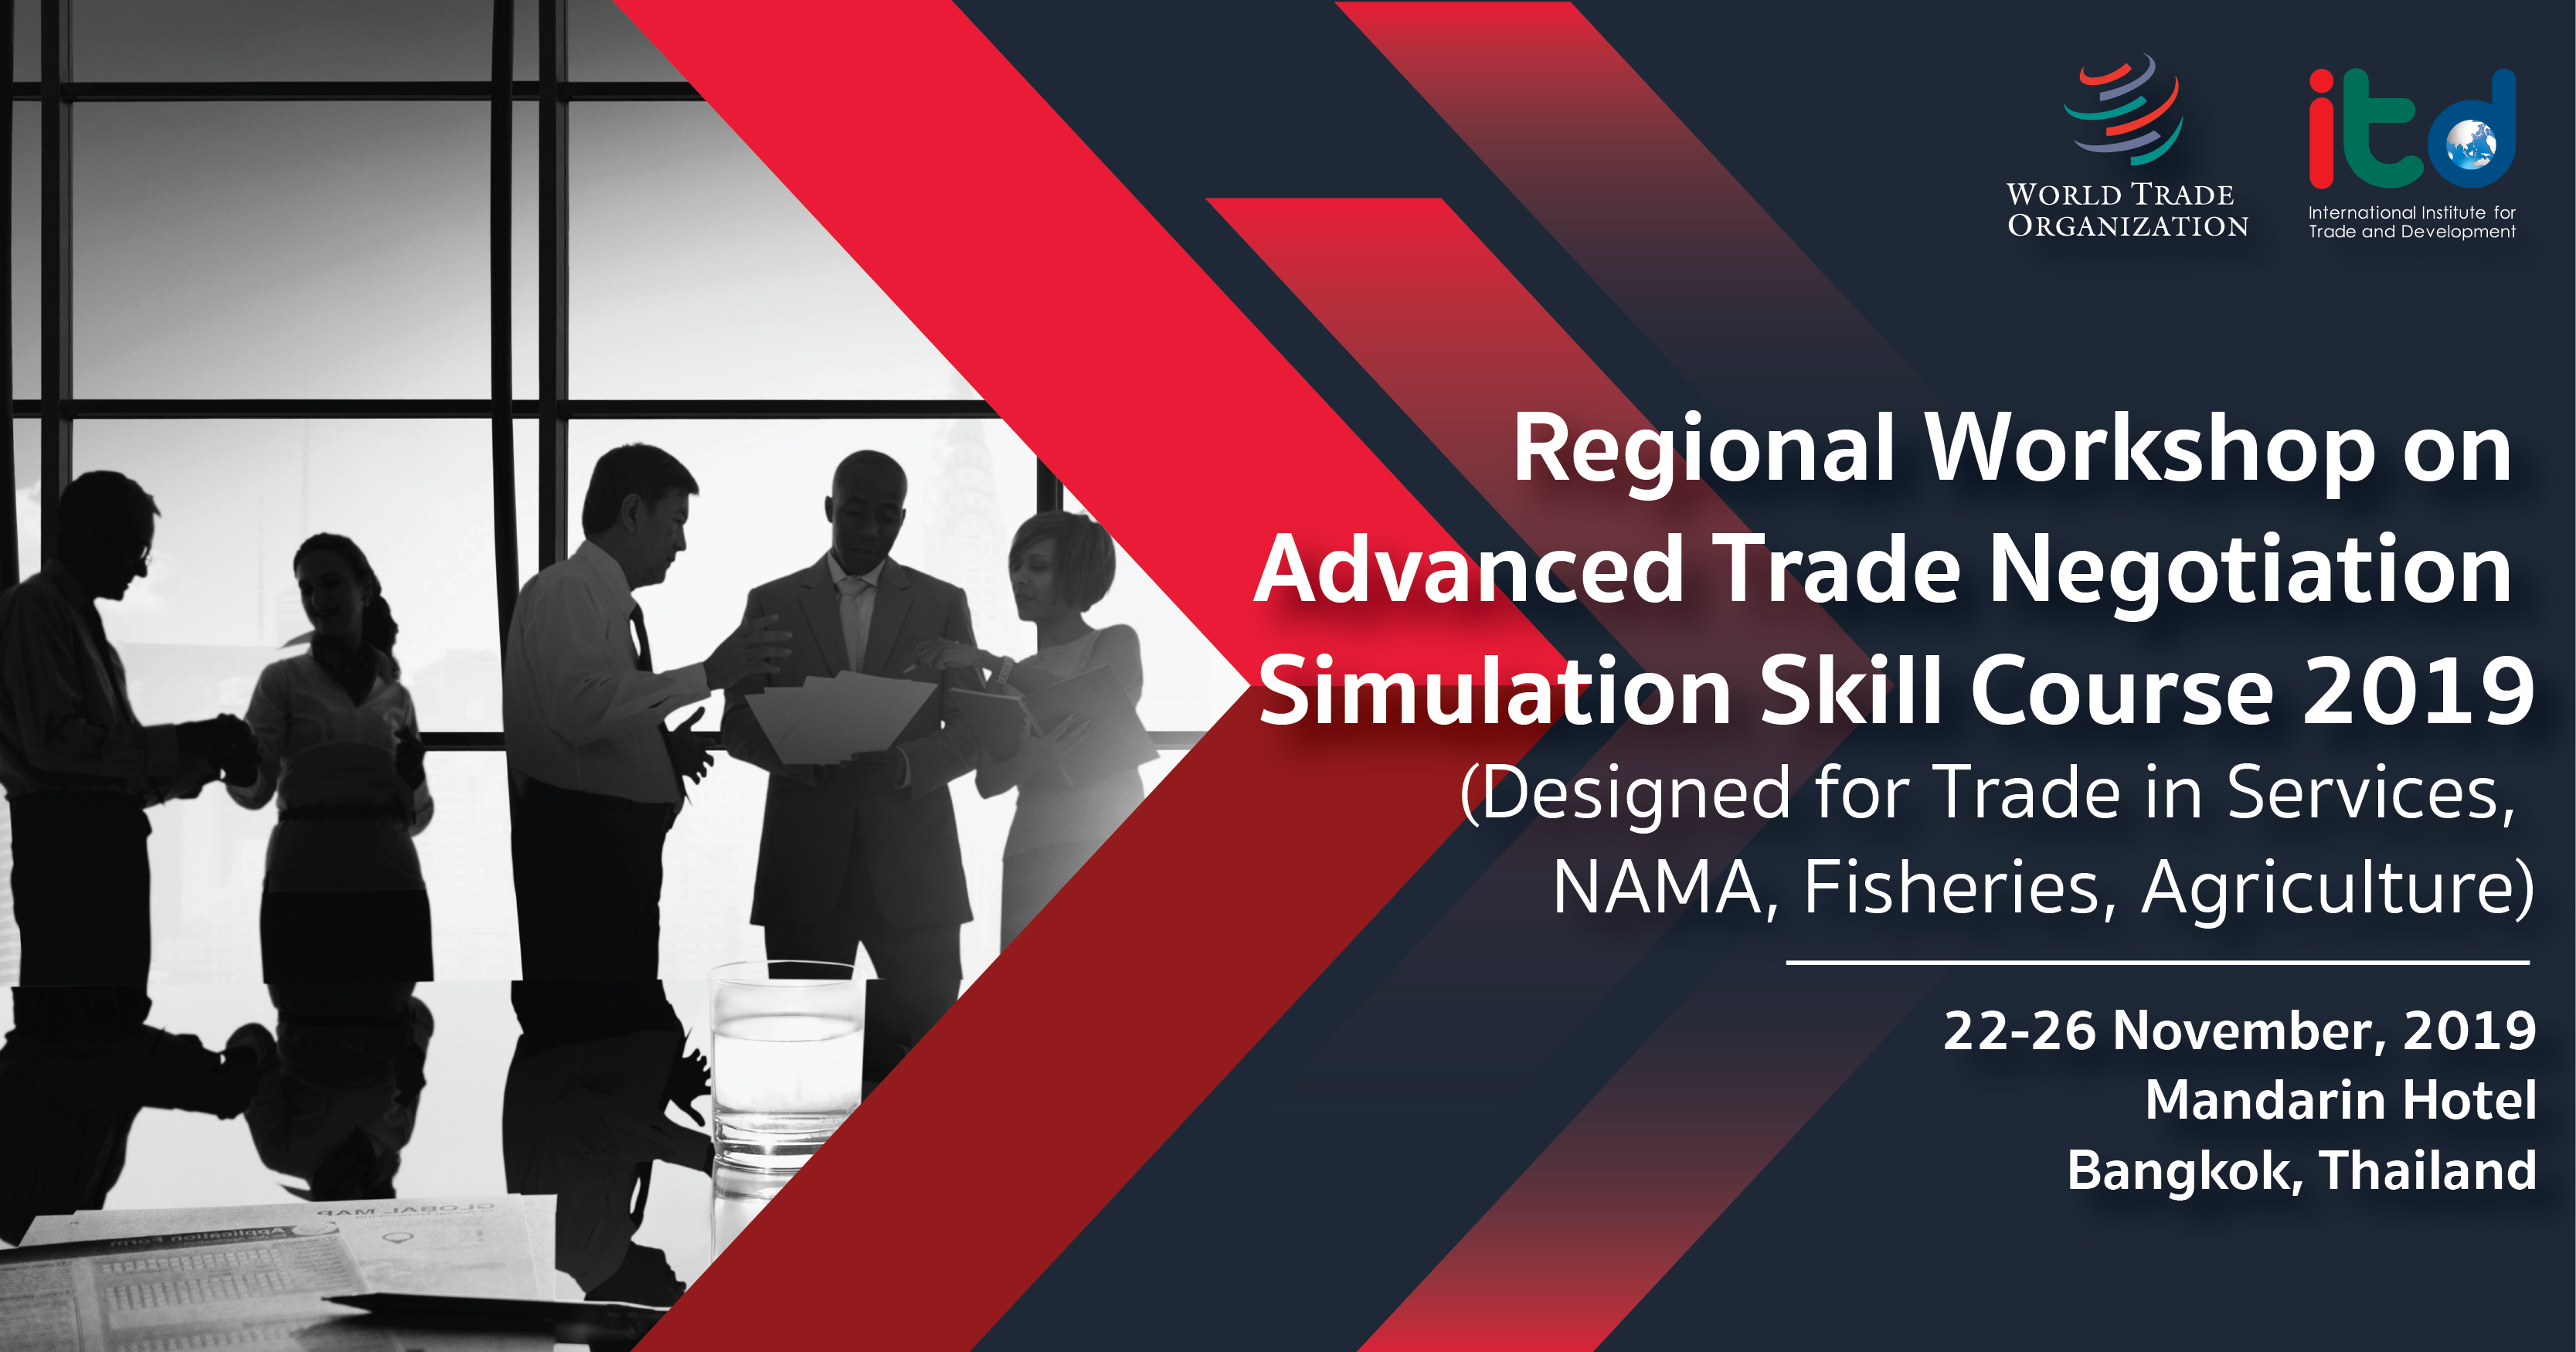 Advanced Trade Negotiation Regional Workshop 2019 / Advanced Trade  Negotiation Simulation Skills Course 2019